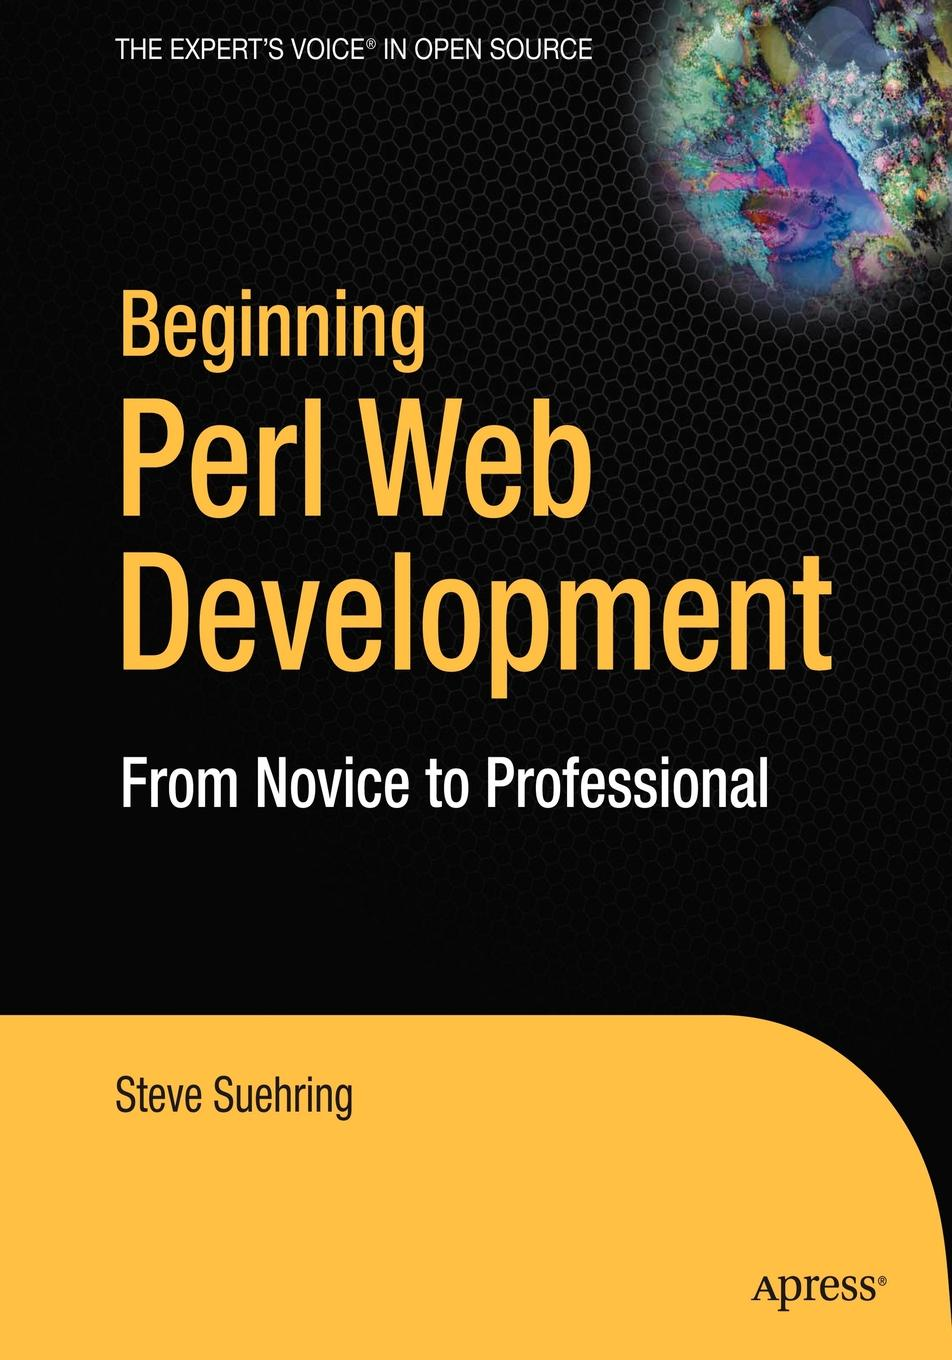 Steve Suehring Beginning Web Development with Perl. From Novice to Professional laurence moroney beginning web development silverlight and asp net ajax from novice to professional